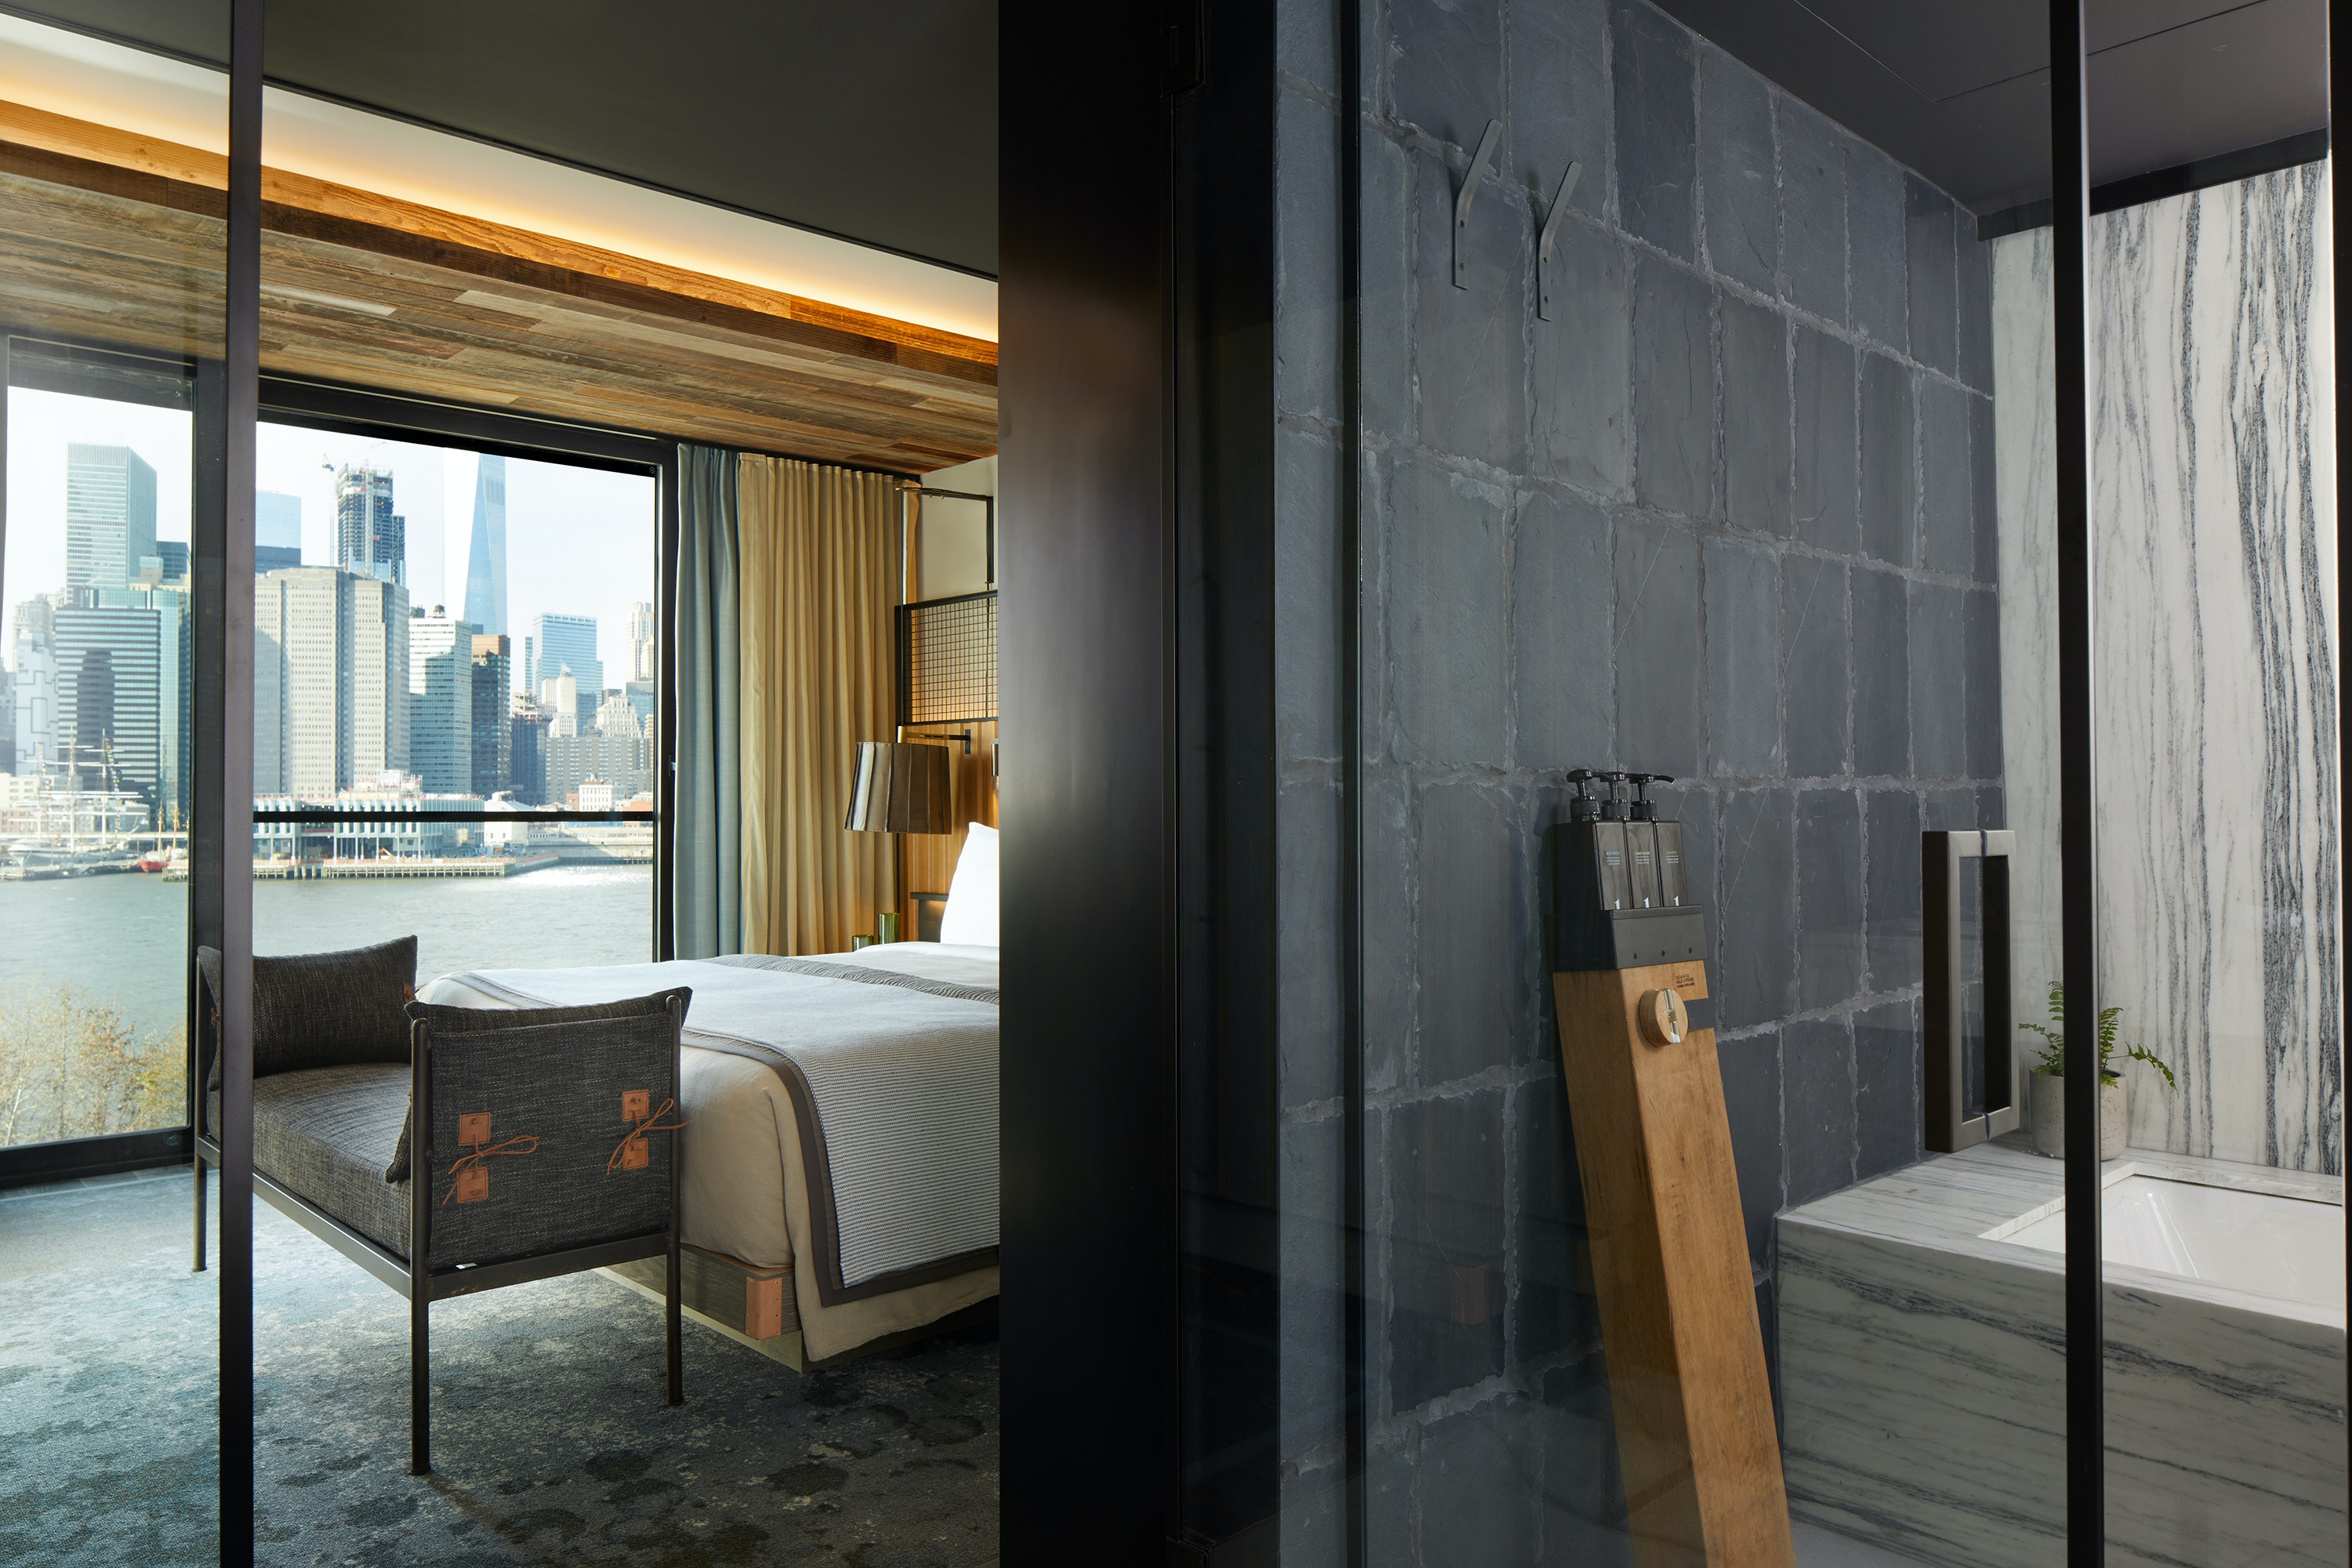 Every room at 1 Hotel Brooklyn Bridge includes a filtered-water system.